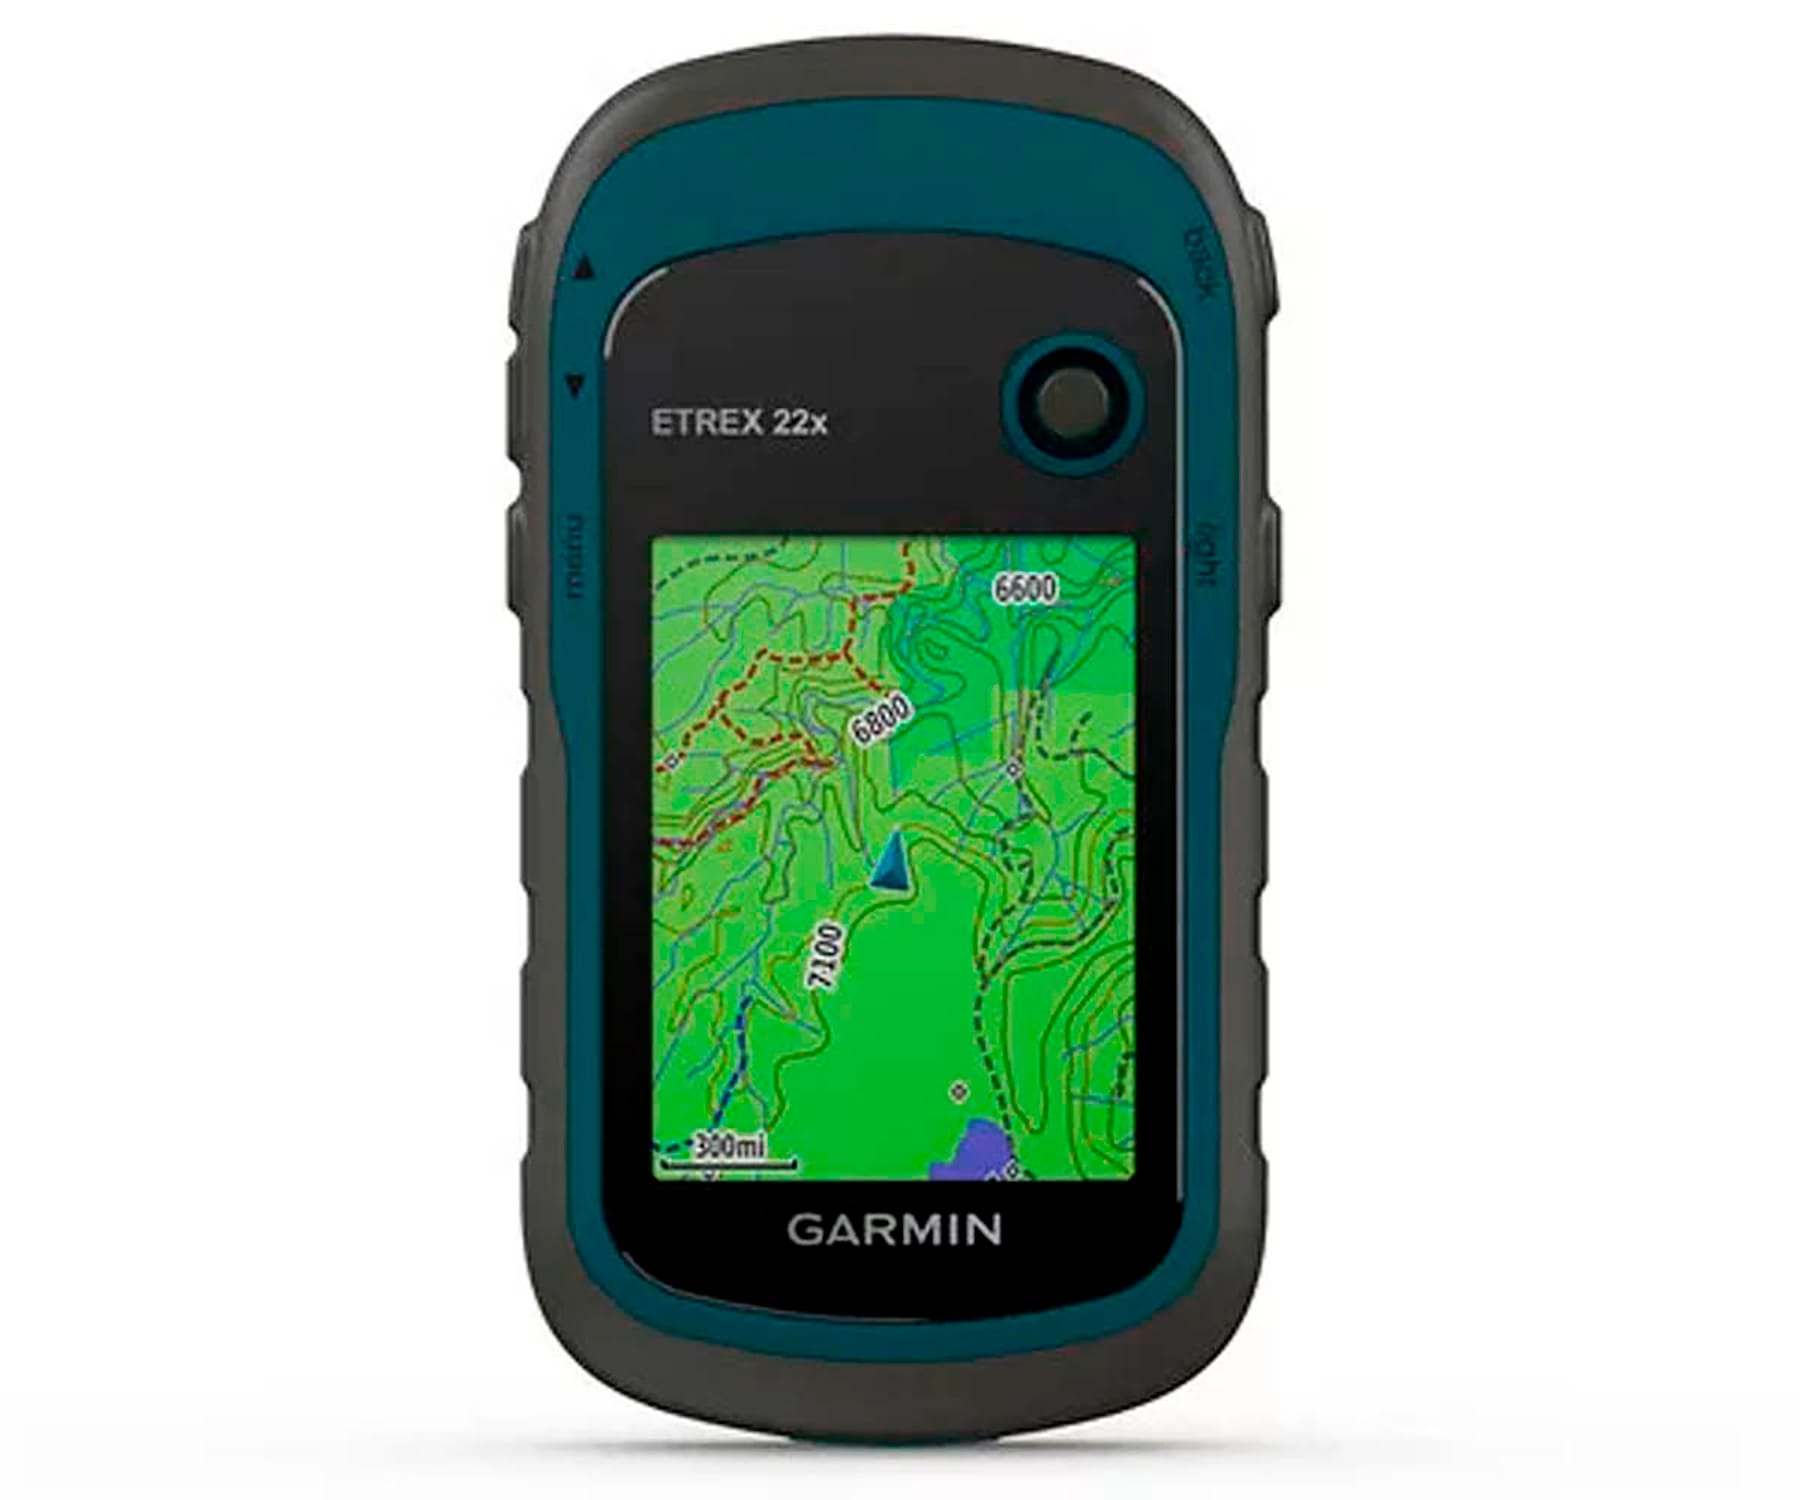 GARMIN ETREX 22X GPS IDEAL PARA TREKKING Y EXCURSIONISTAS